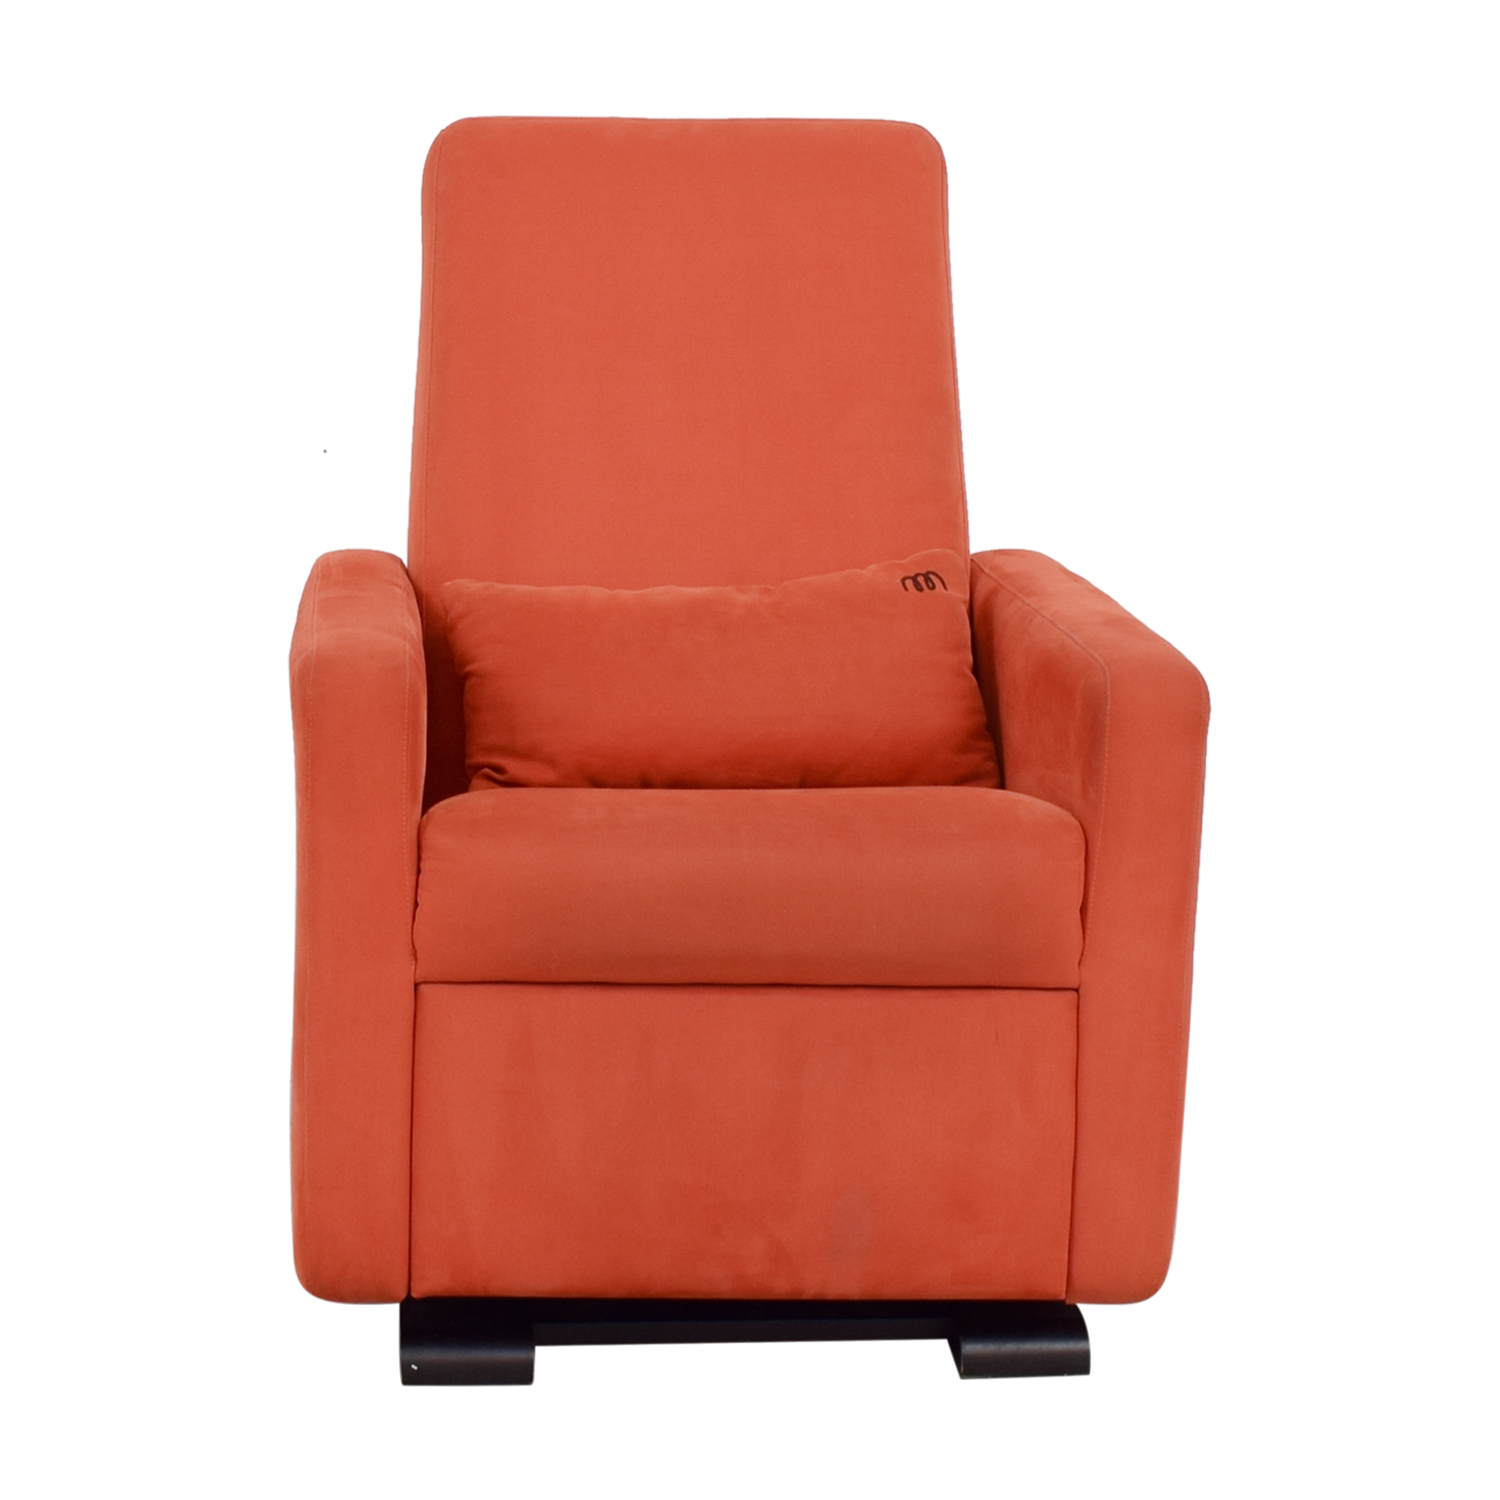 shop Monte Design Orange Nursery Recliner Glider Monte Design Chairs